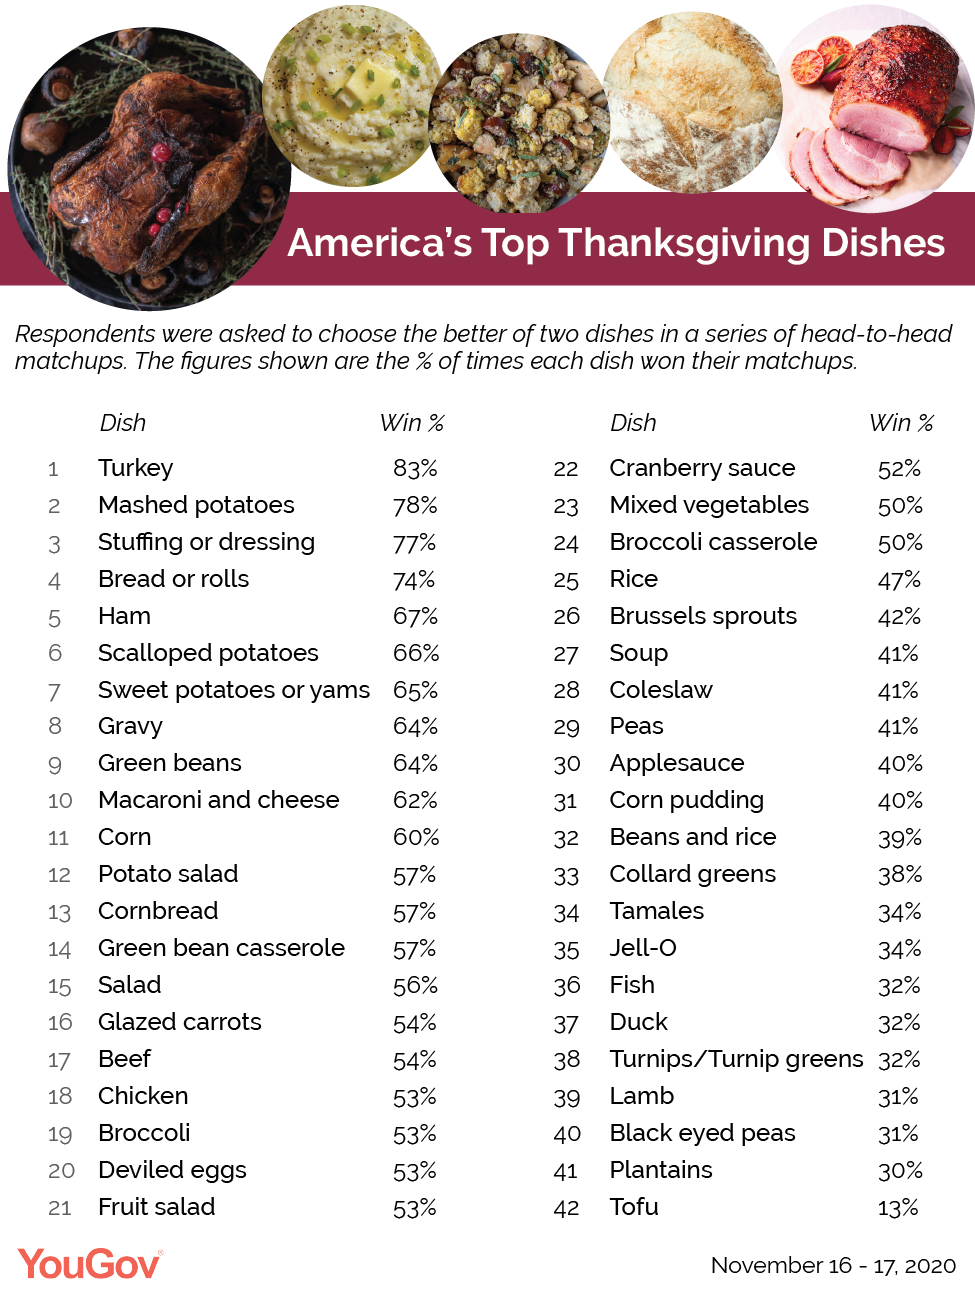 What is the most popular Thanksgiving dish in America?